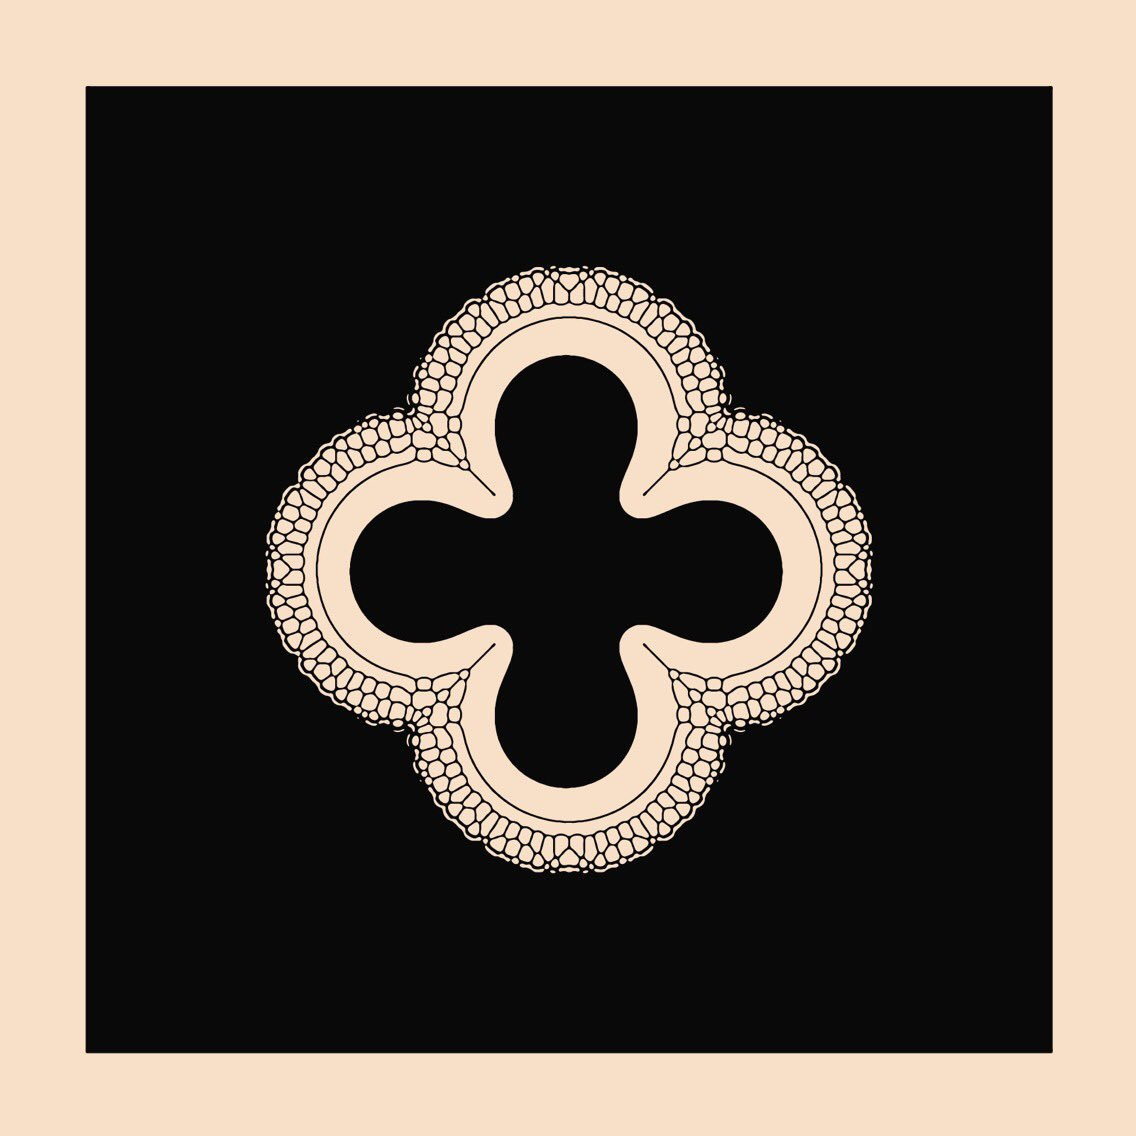 A quatrefoil given the #reactiondiffusion treatment. Just came back from a trip to #Paris and this shape is literally everywhere. From medieval architecture to manhole covers to everything in between.